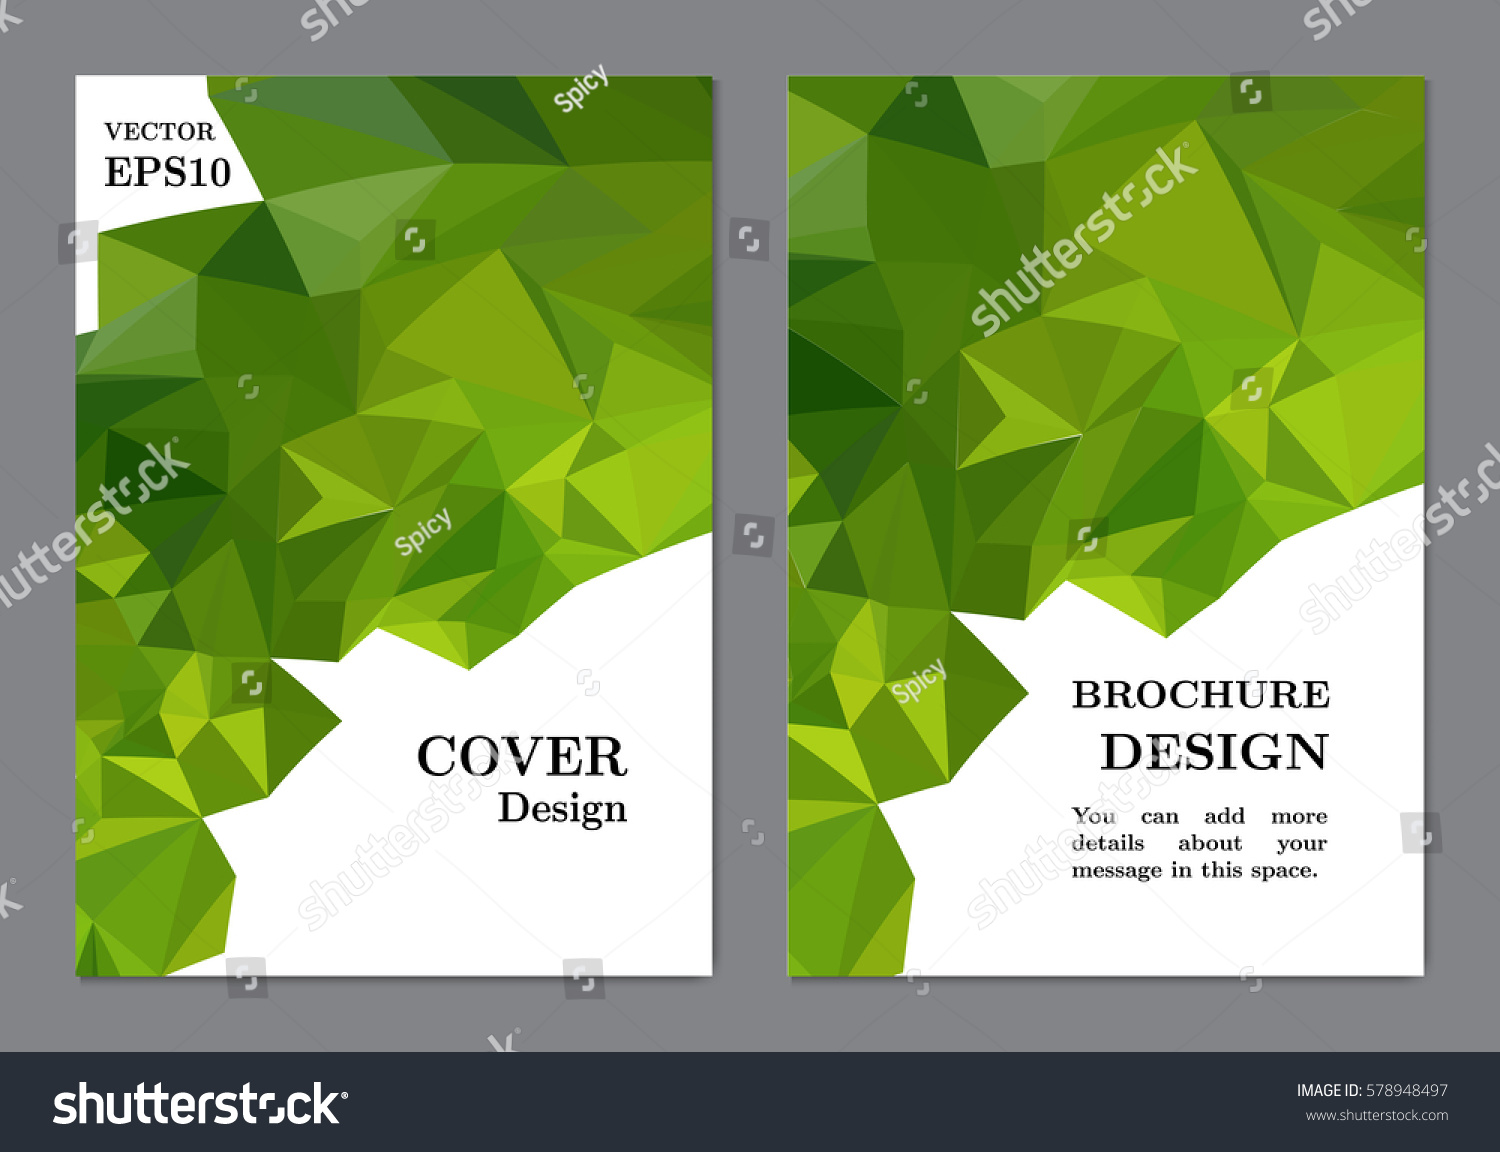 Business Book Cover Design Template : Background business book cover design template stock